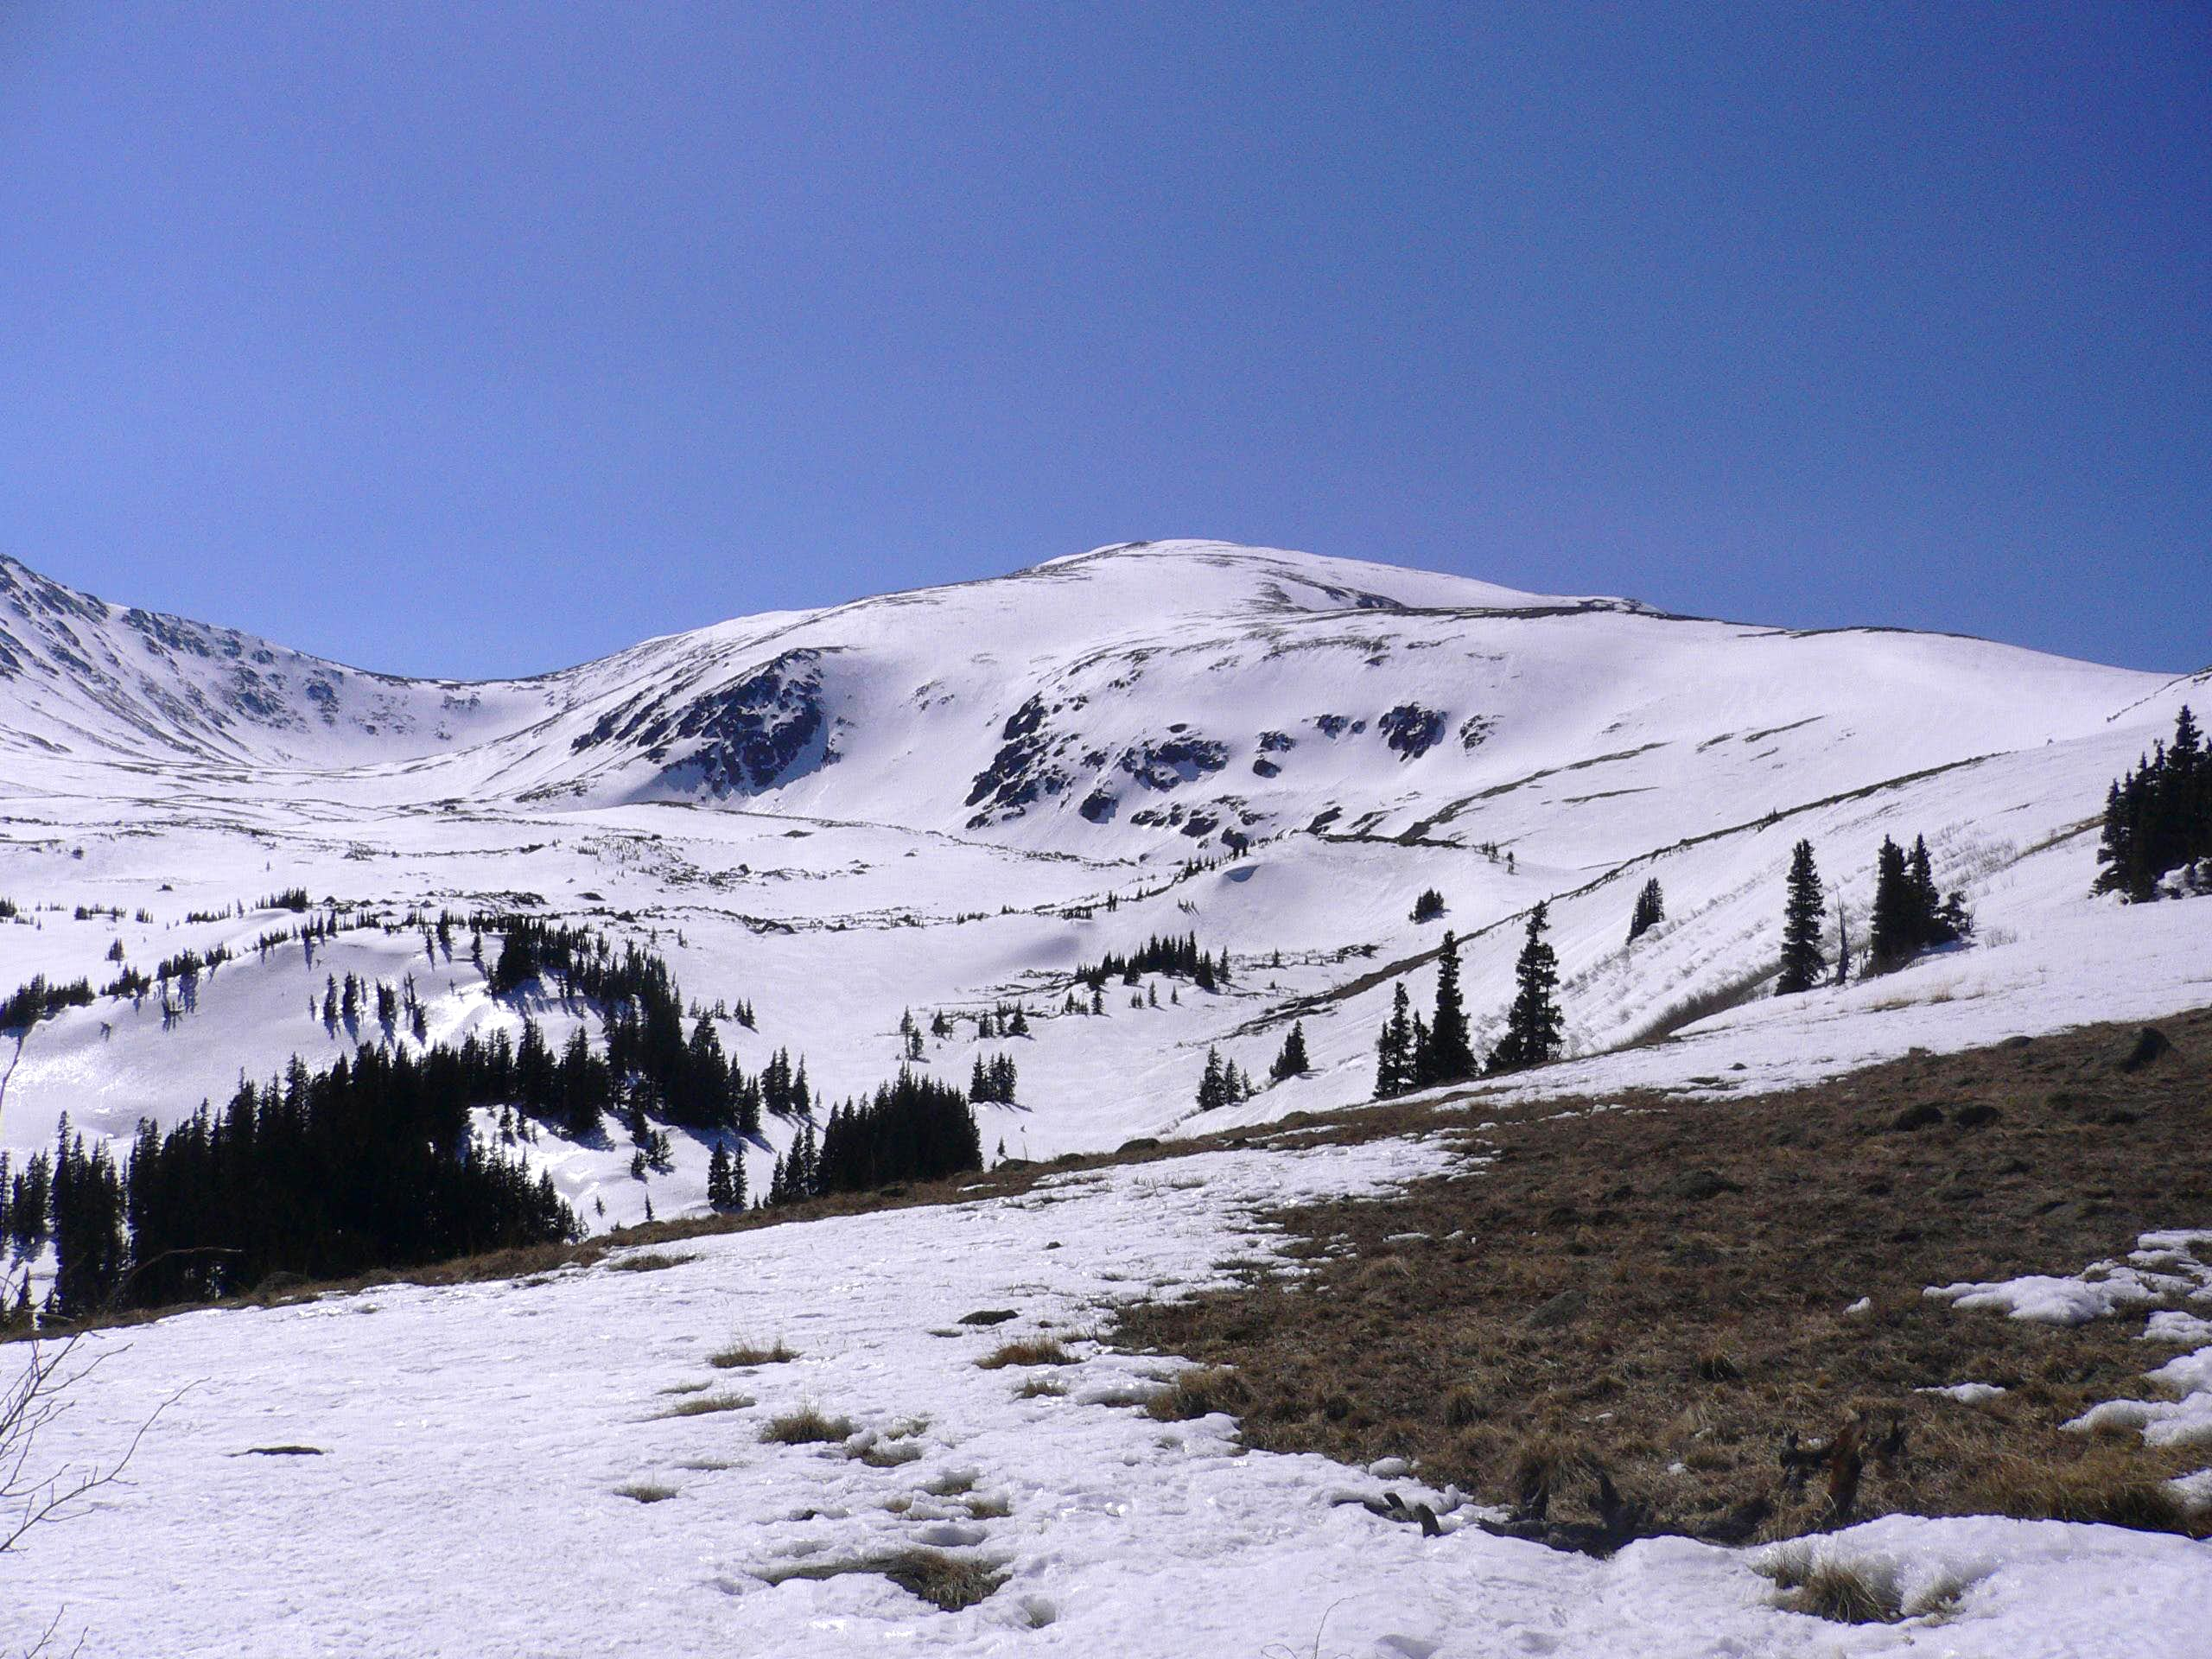 Mount Elbert - April 27, 2008